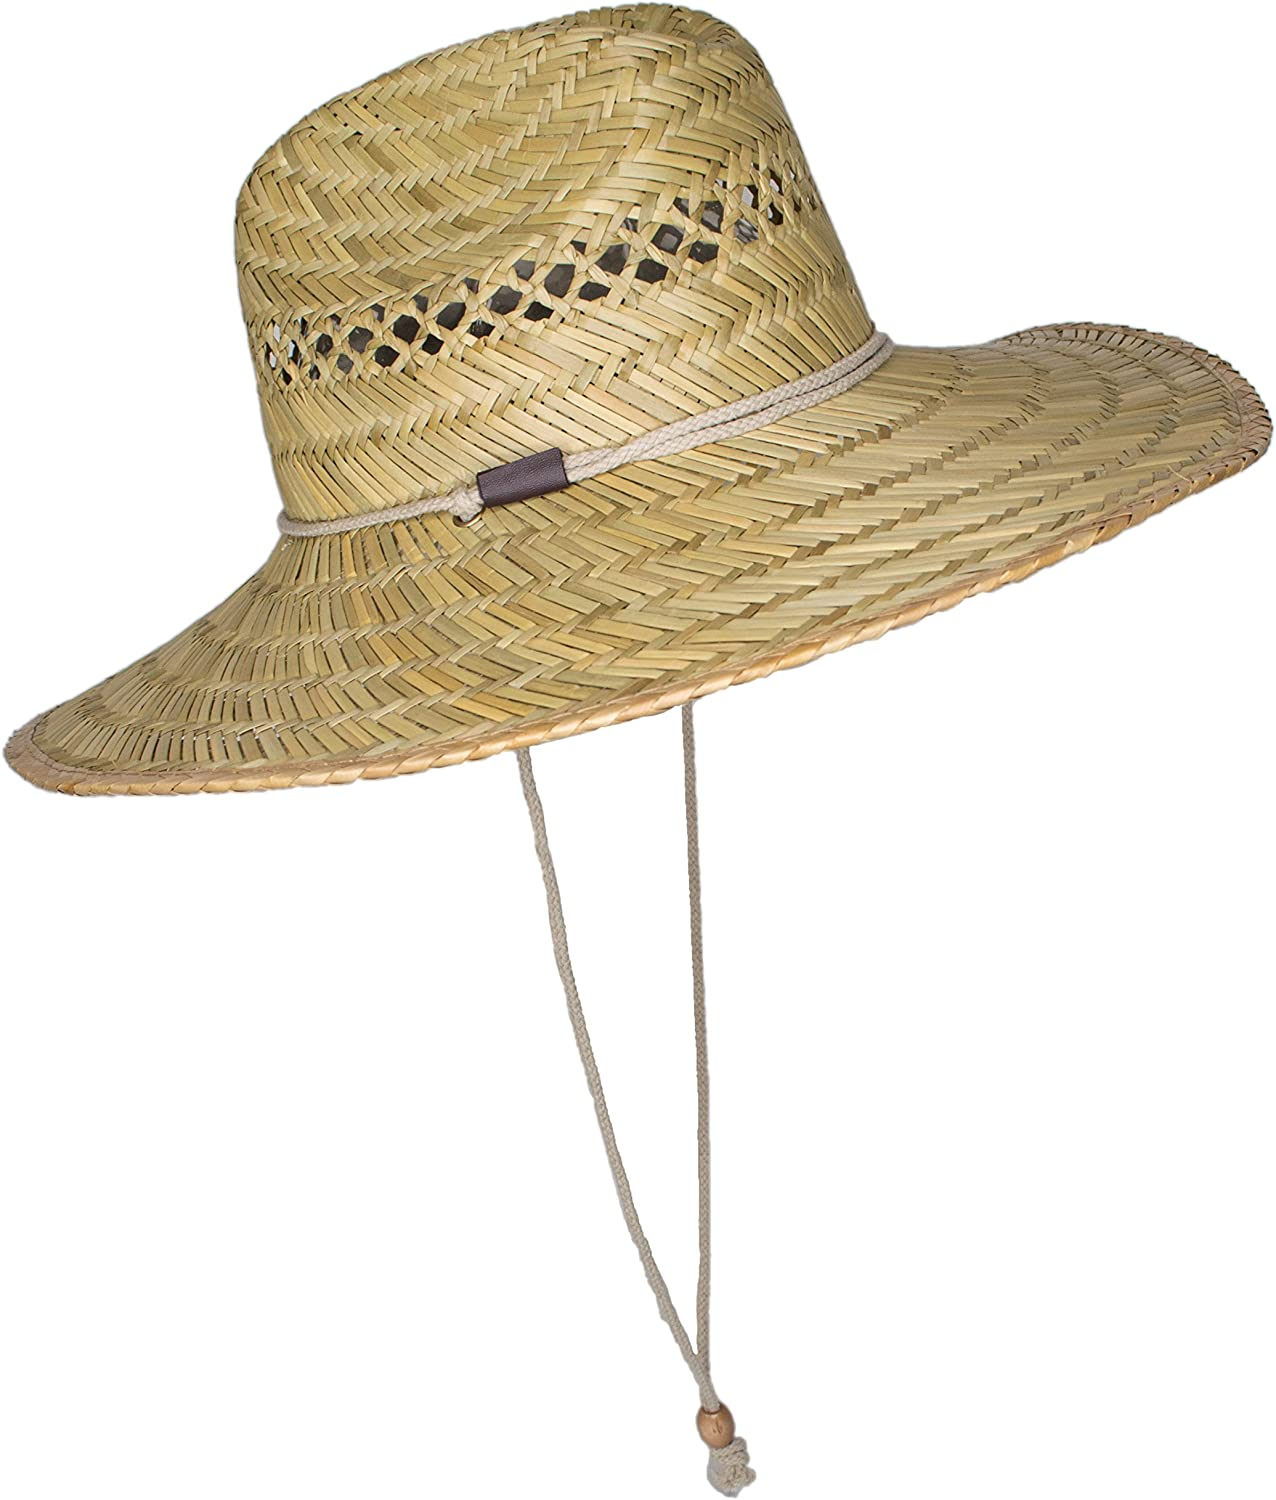 Mens Straw Outback Lifeguard Sun Hat with Wide Brim